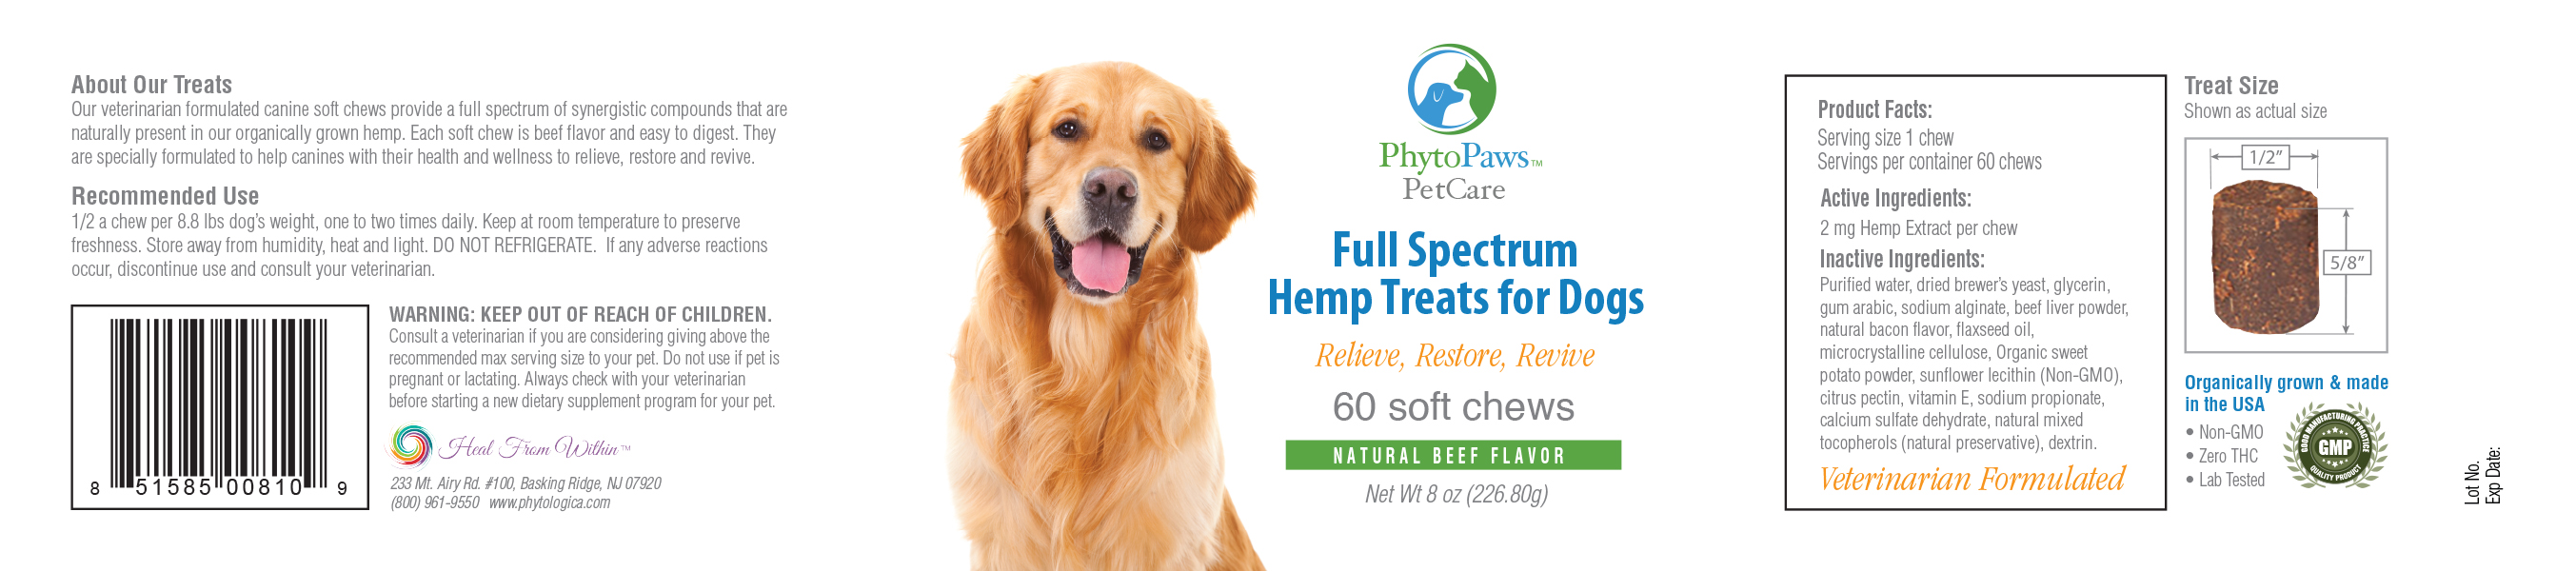 Full Spectrum Hemp CBD Dog Treats